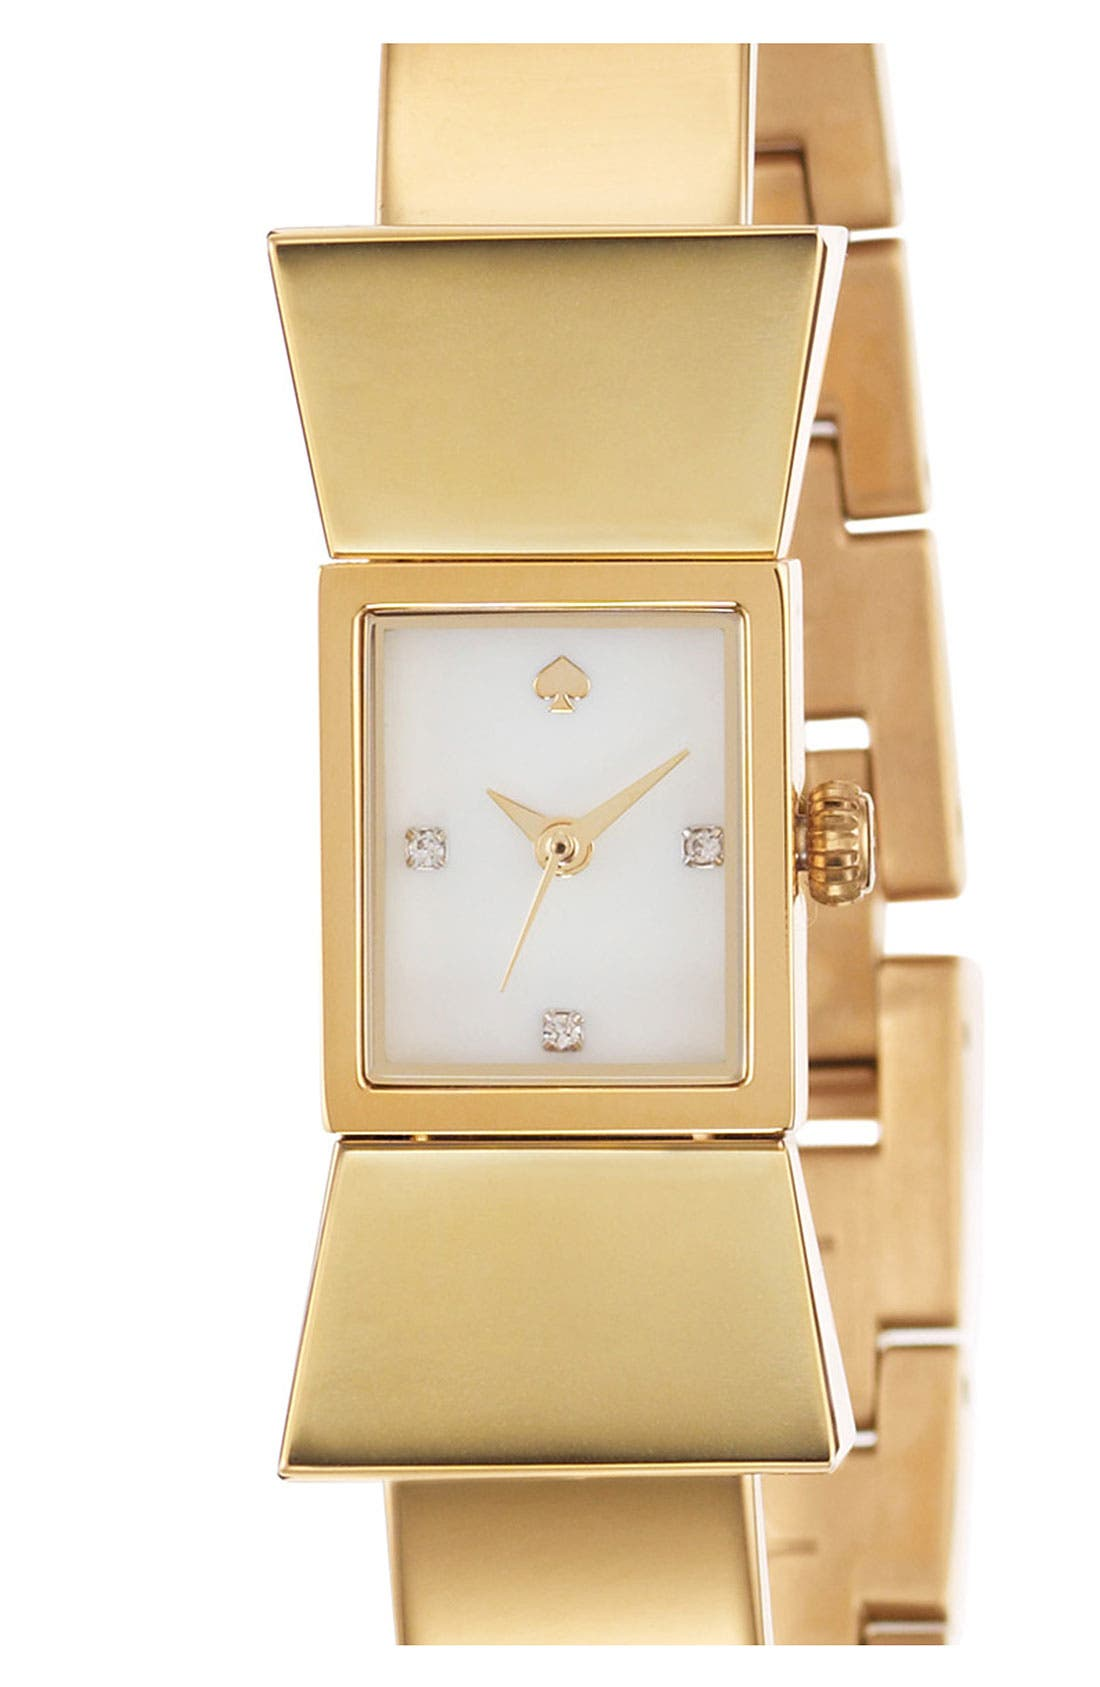 Main Image - kate spade new york 'carlyle' bangle watch, 20mm x 43mm